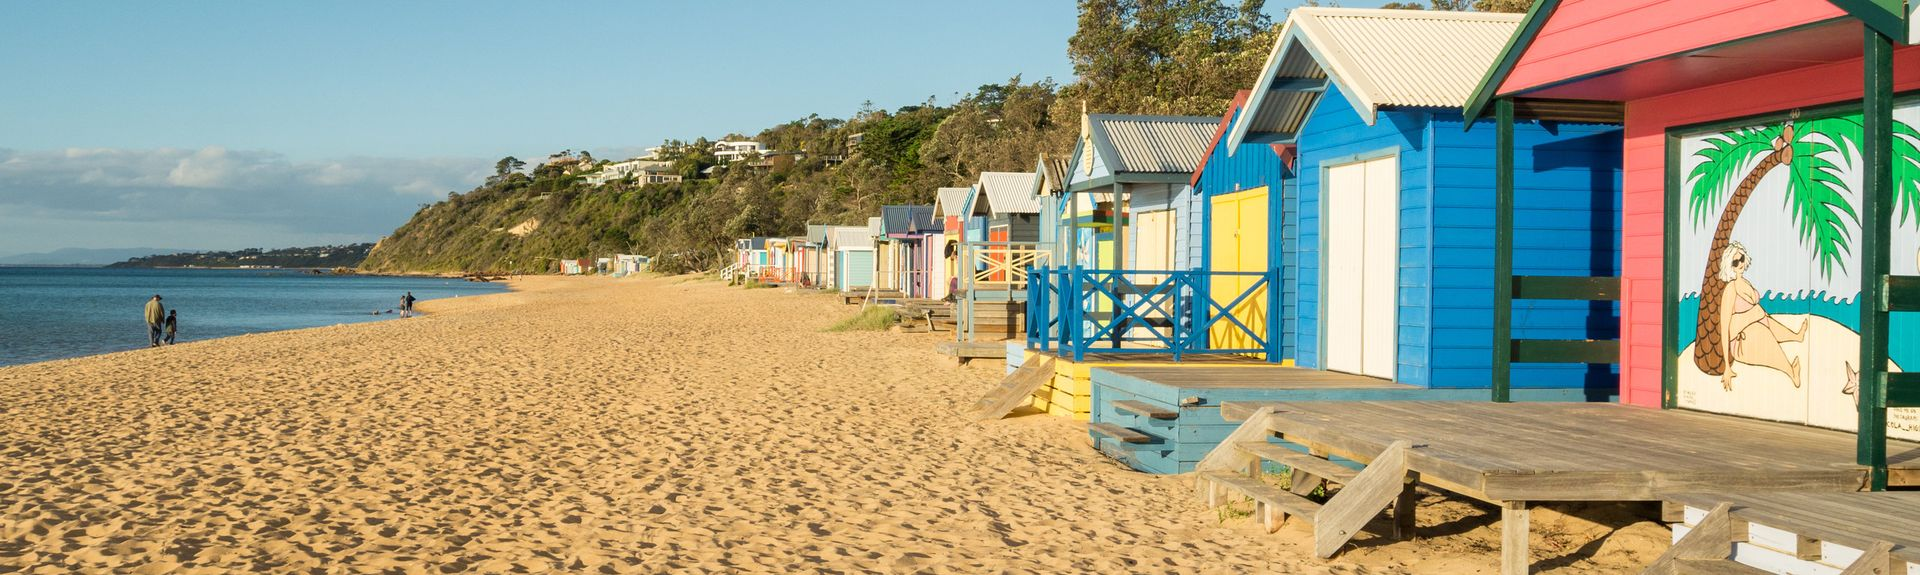 Mornington, Melbourne, Victoria, Australia